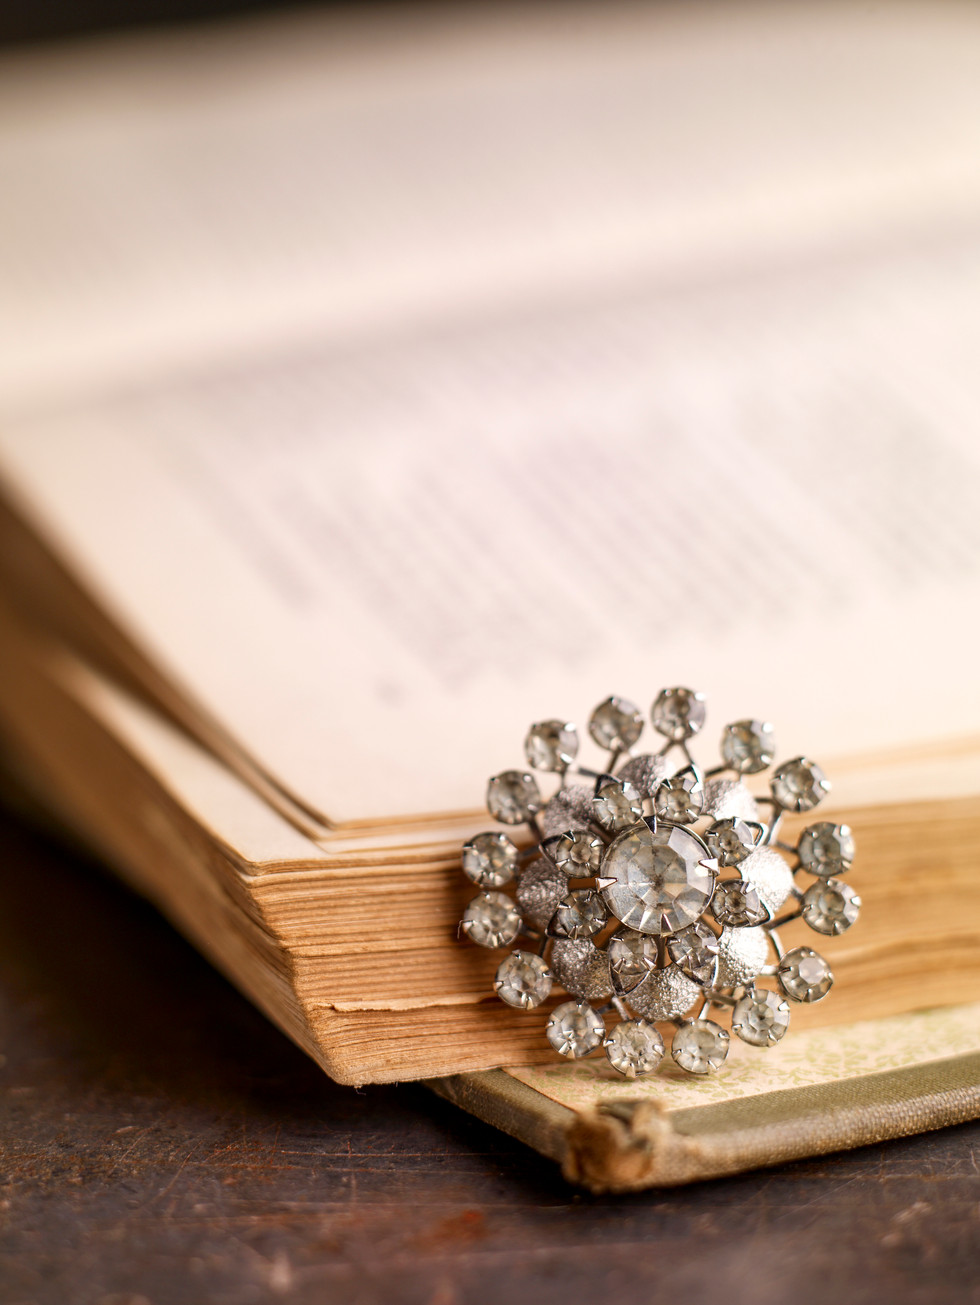 Antique Broach On Book